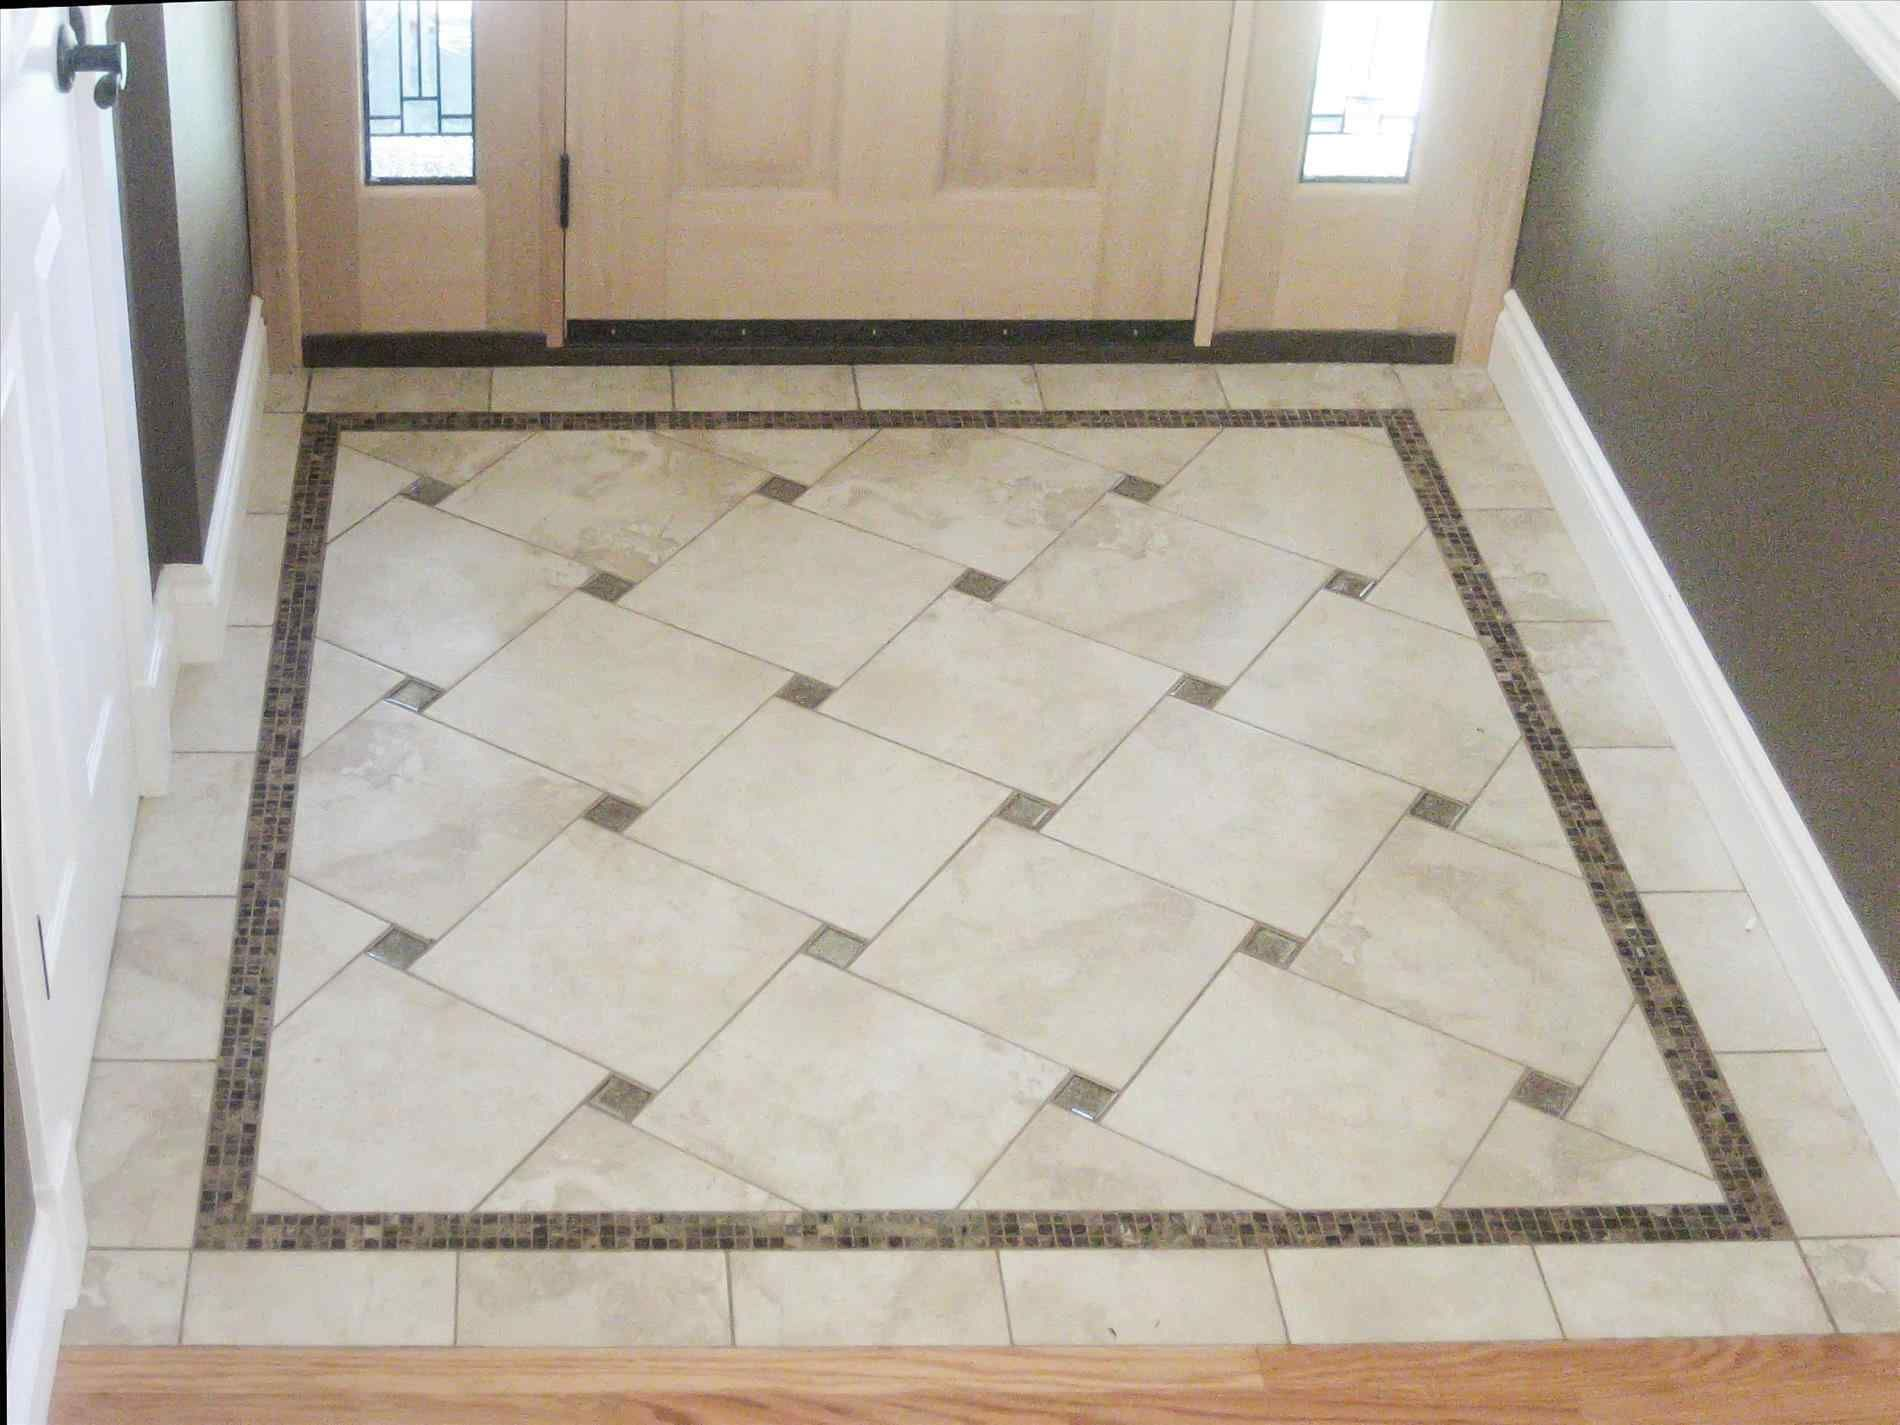 15 Gorgeous Marble Tile Entryway Design Ideas In 2020 Patterned Floor Tiles Bathroom Floor Tile Patterns Ceramic Floor Tile